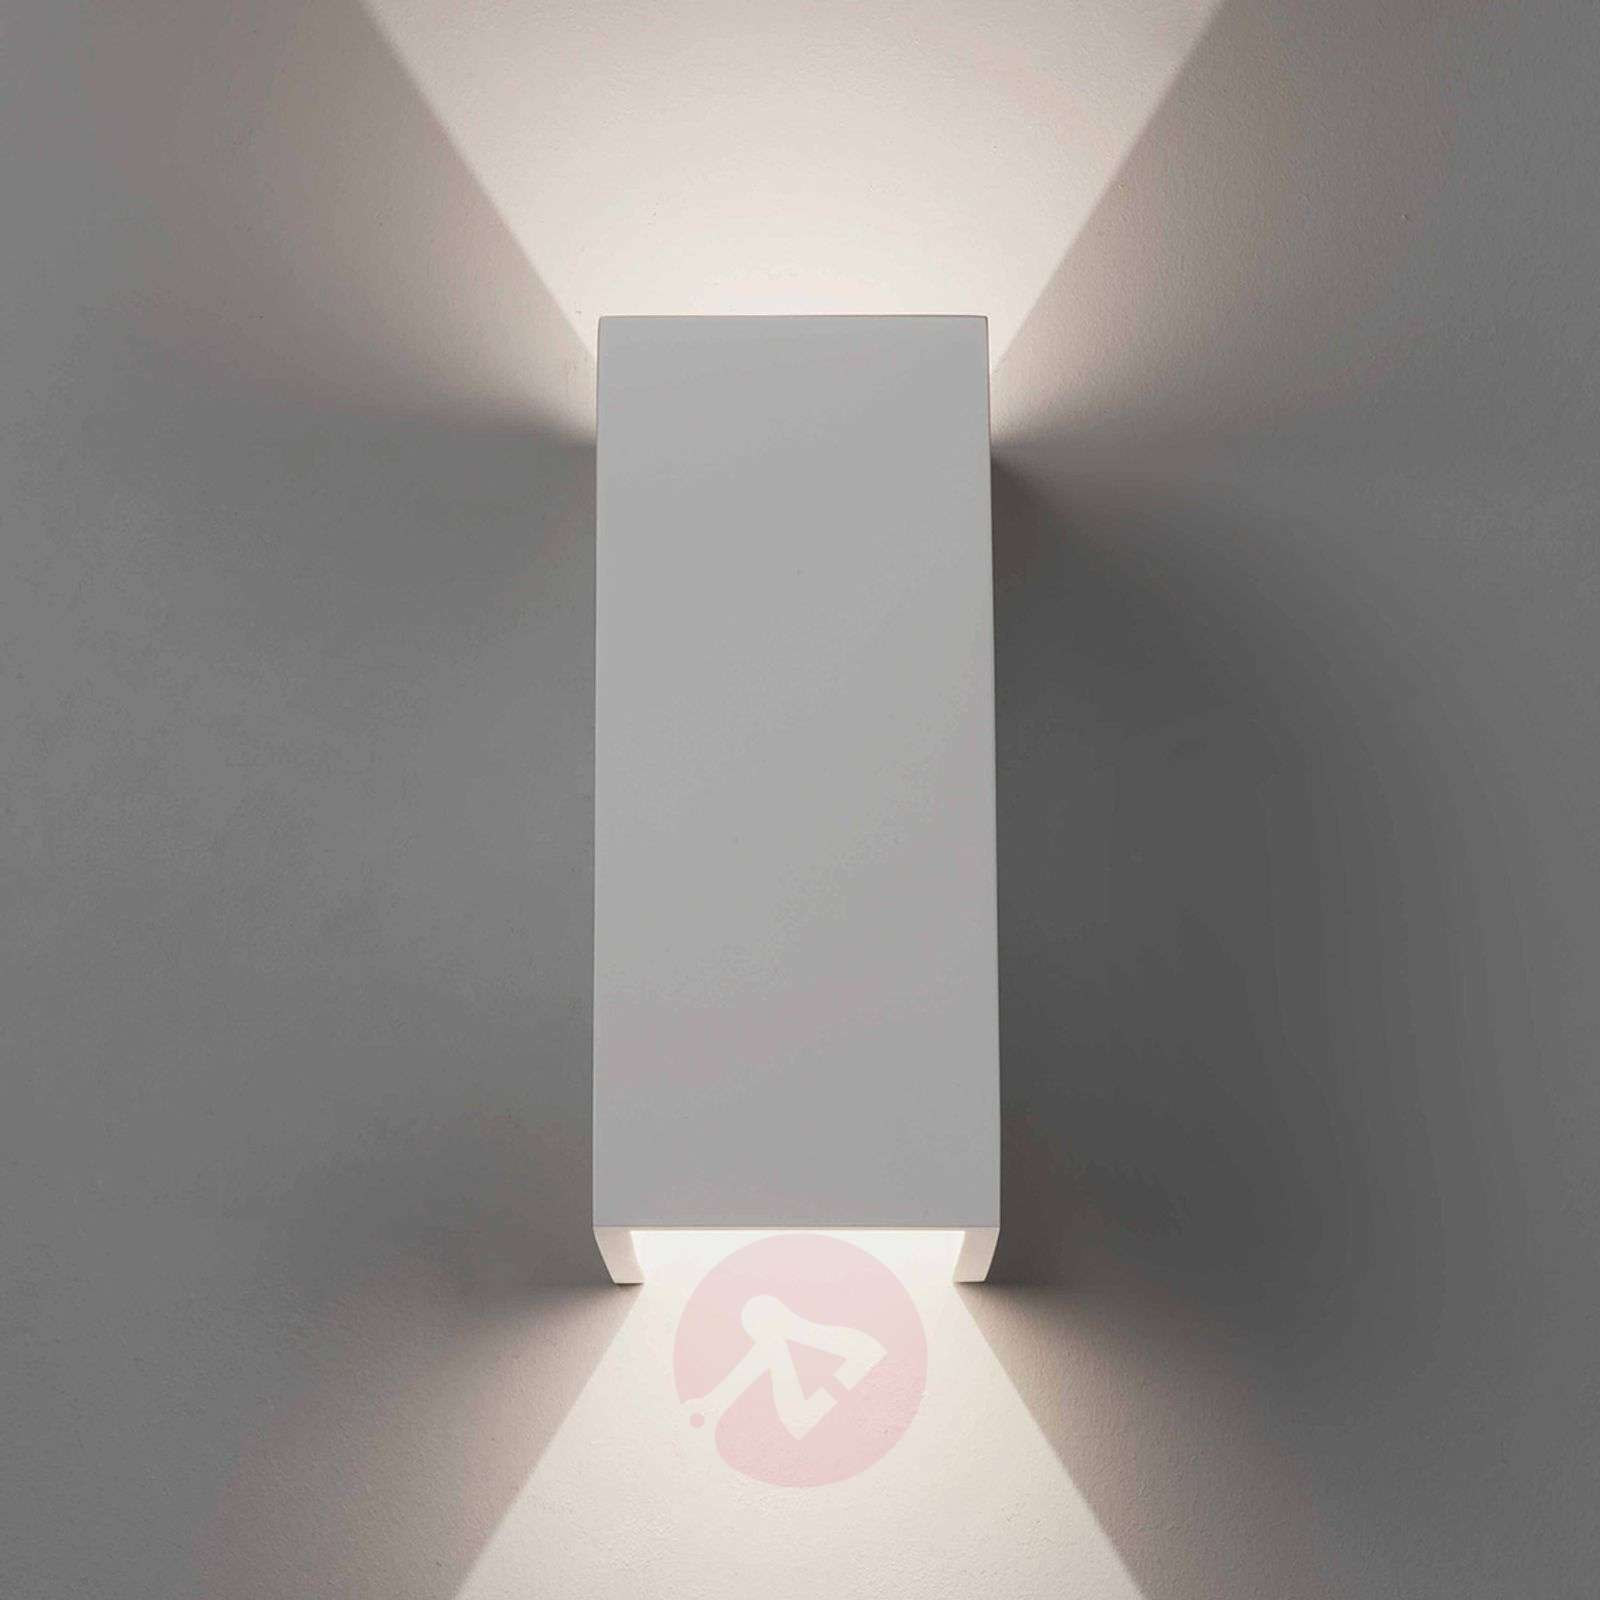 Astro Parma 210 wall light in white-1020346-02